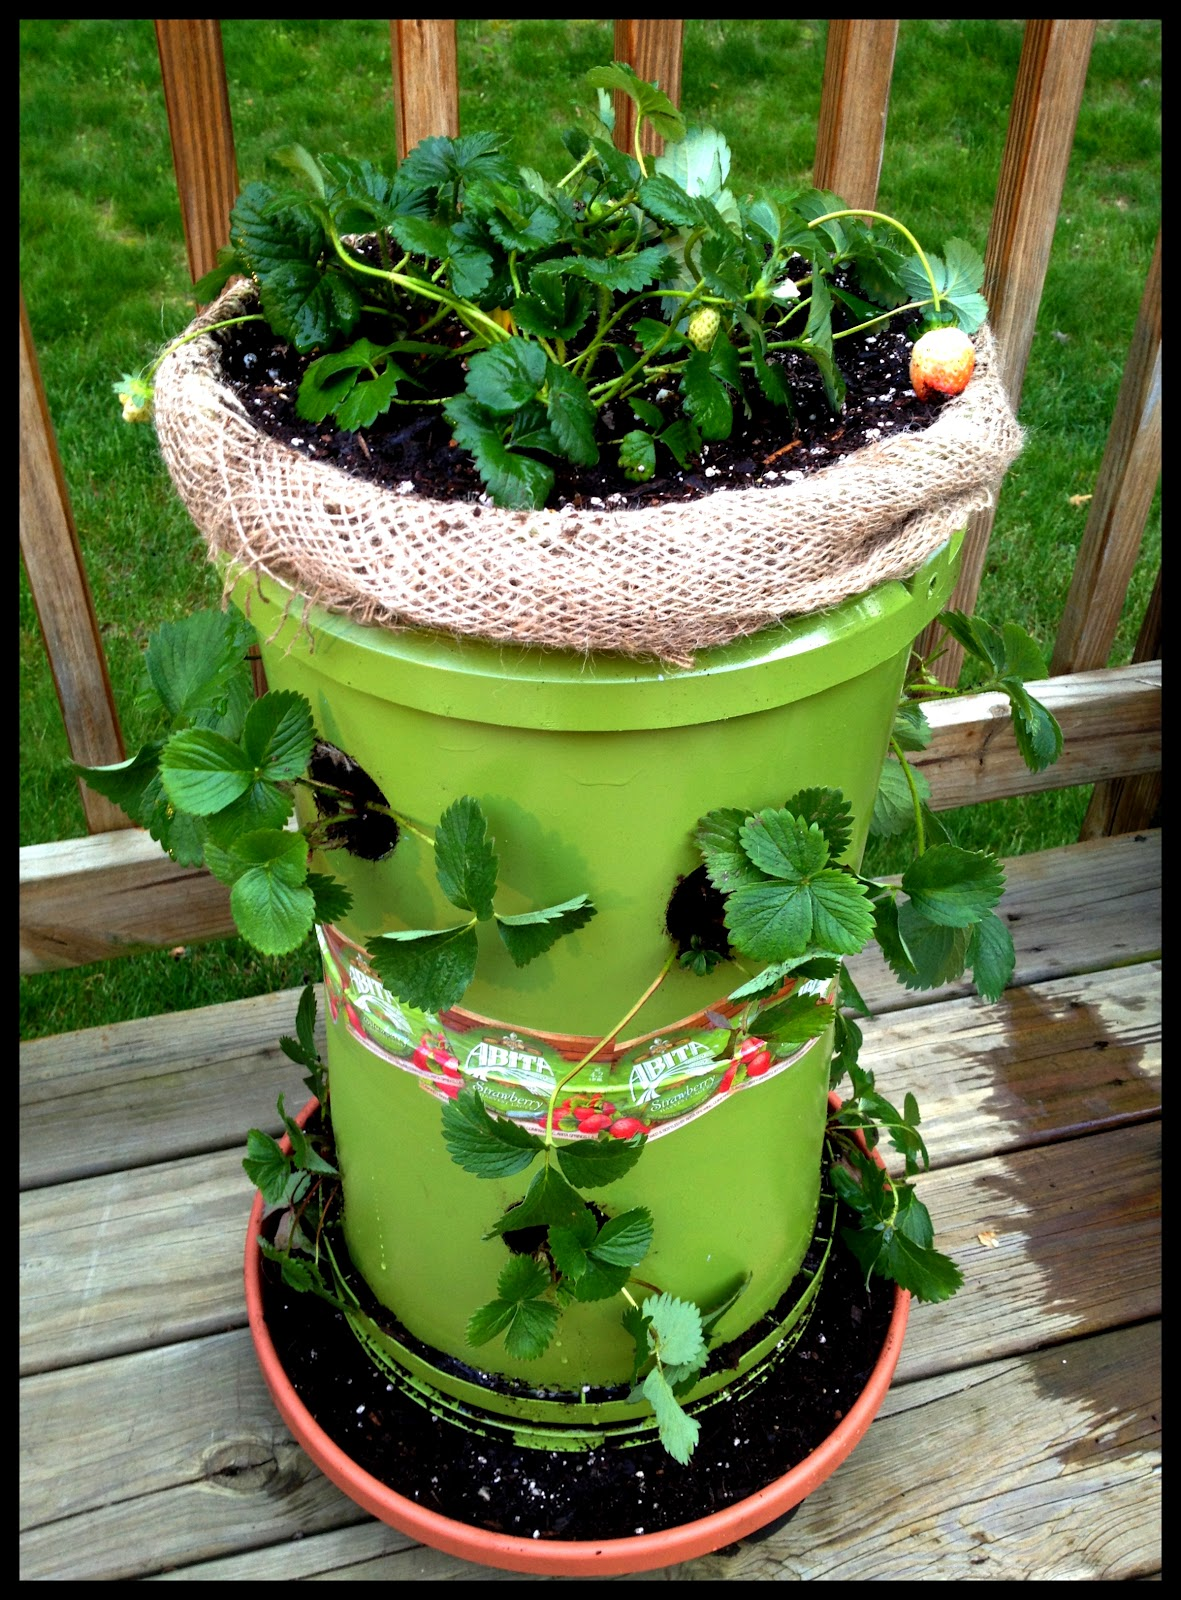 Courtneys Bathtub Gin How To Build Your Own Strawberry Tower